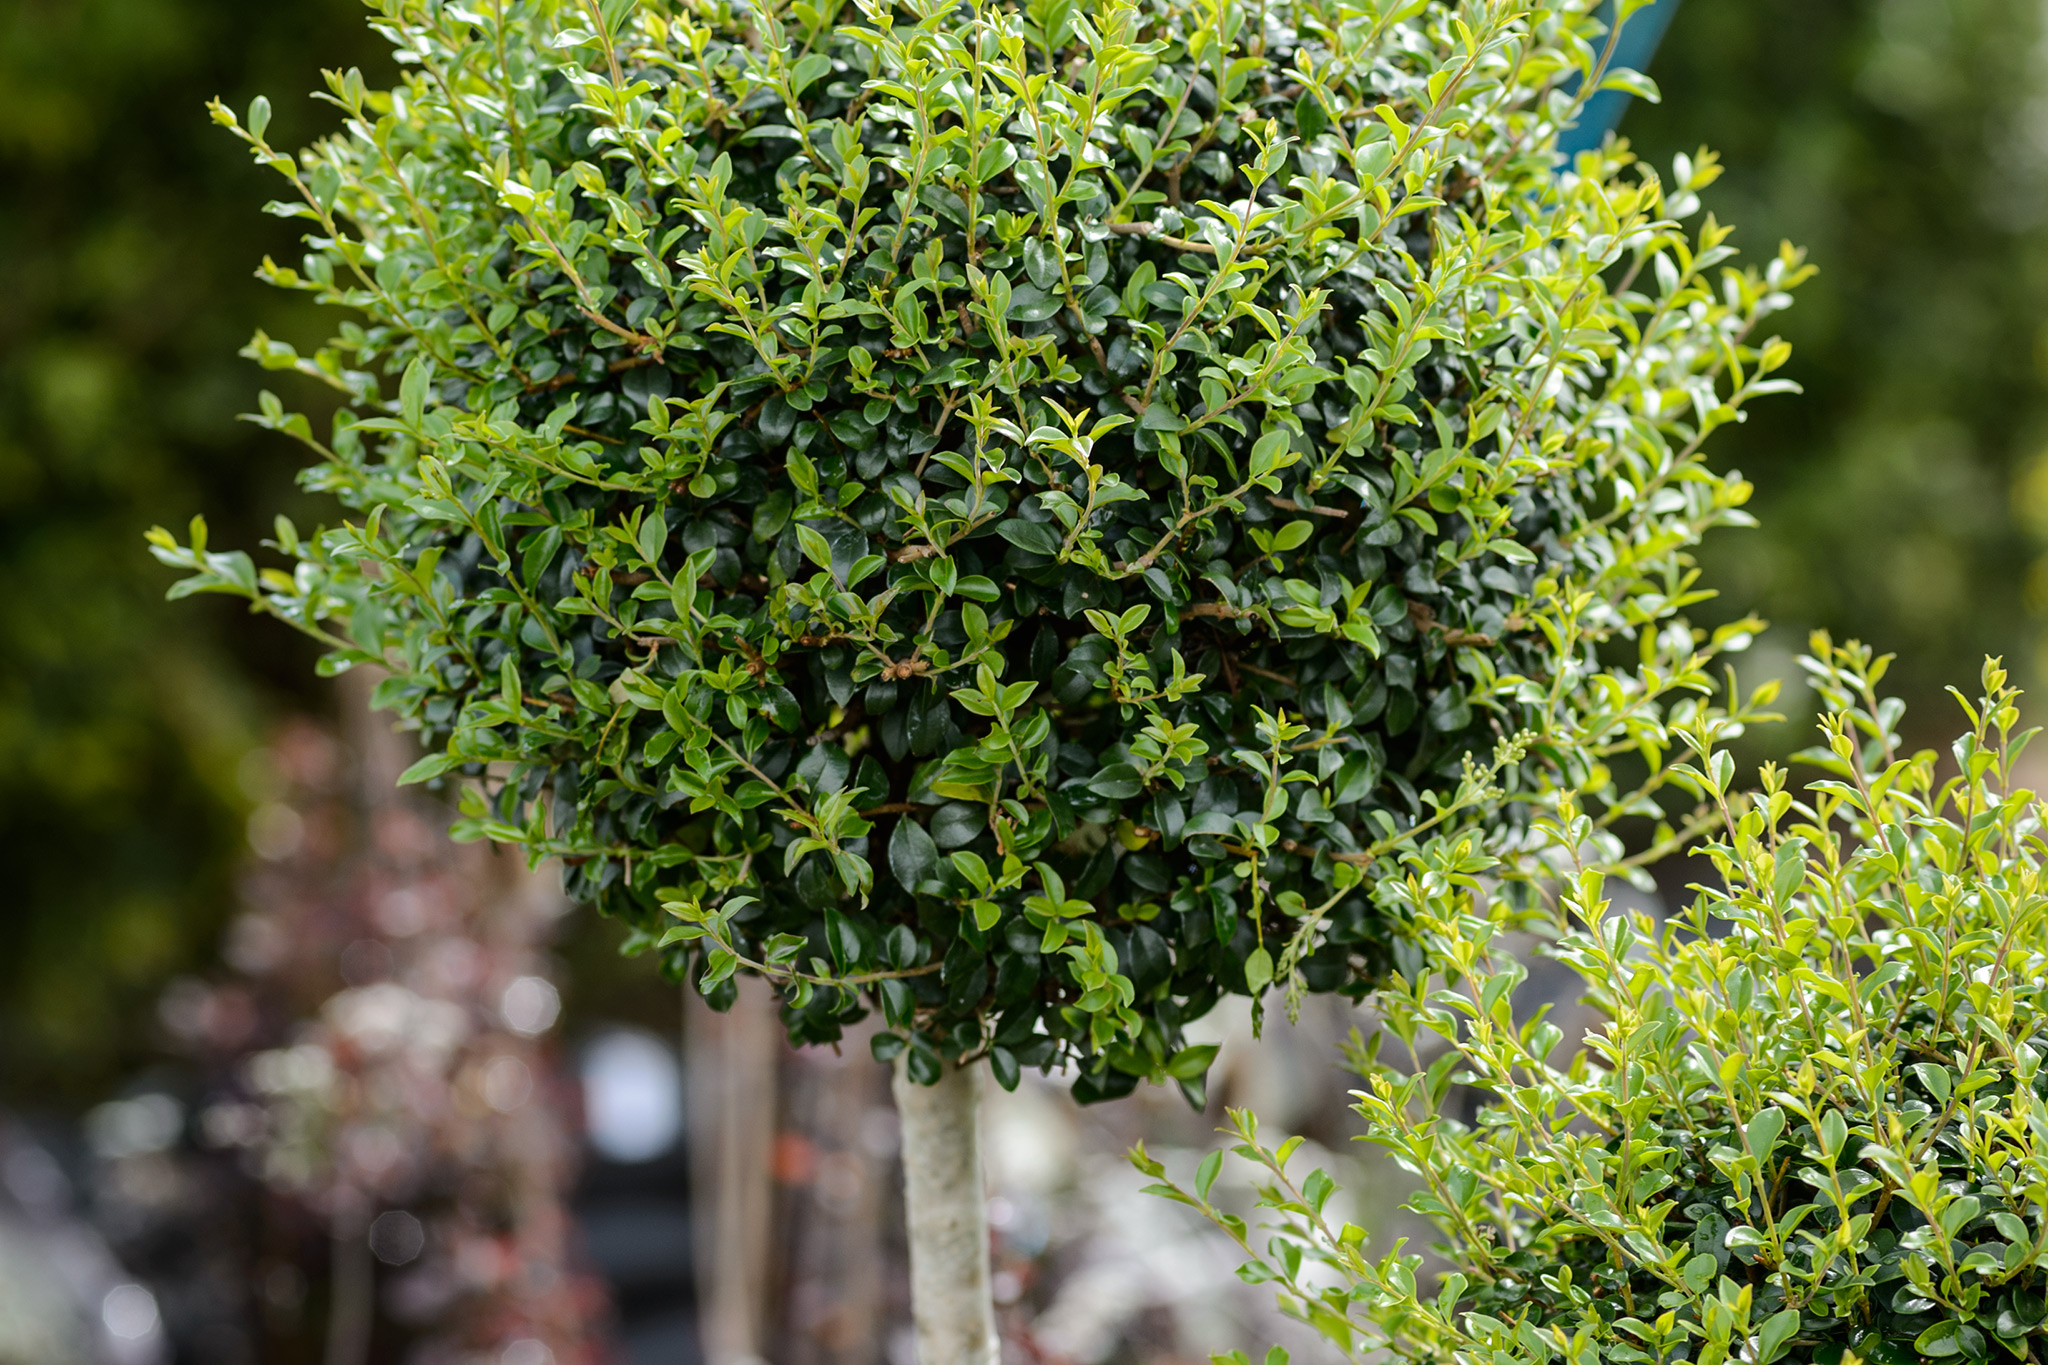 Chinese privet (Ligustrum lucidum) lollipop standard